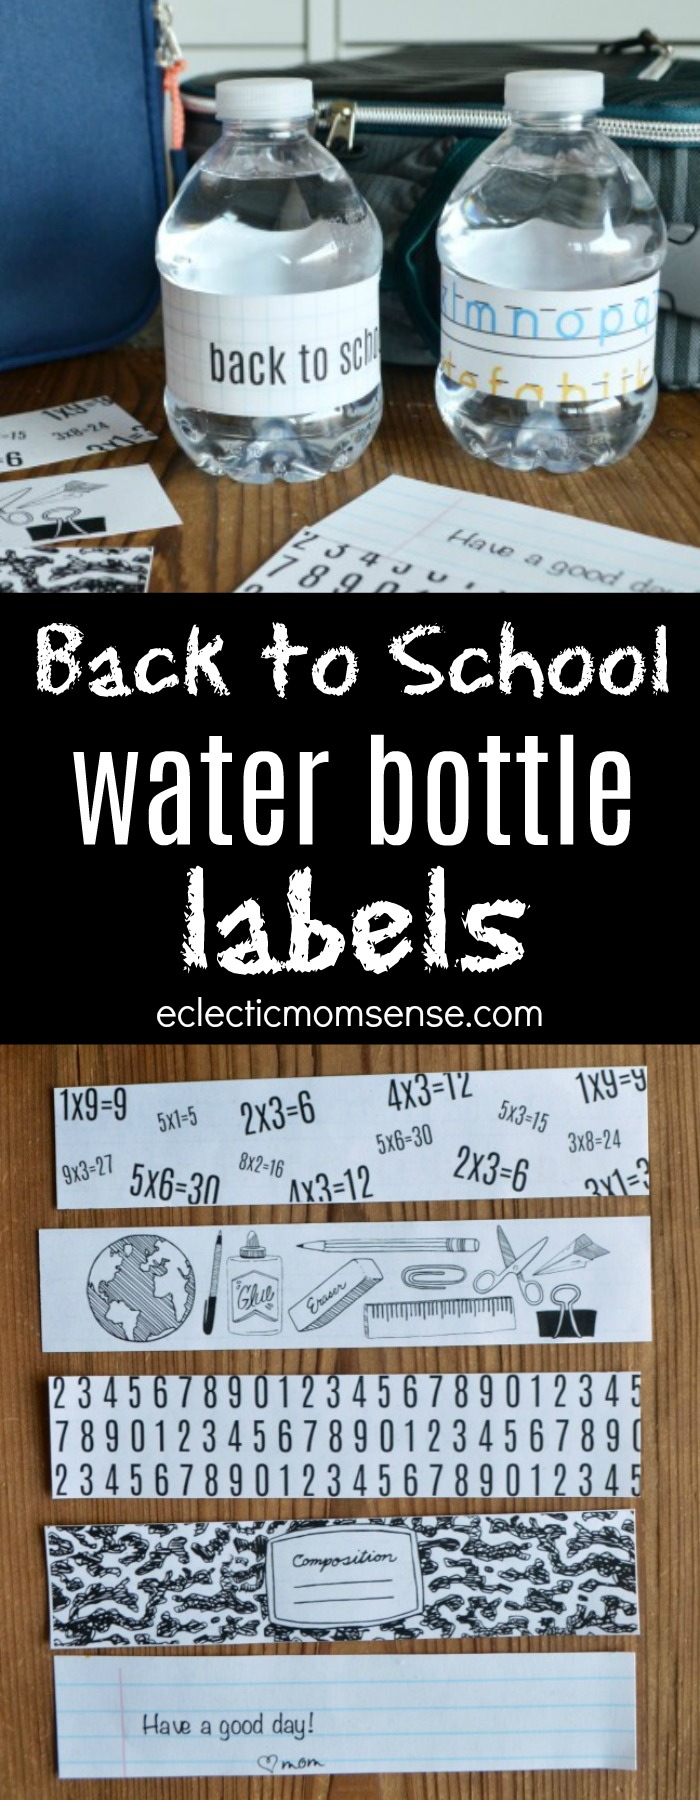 back-to-school-water-bottle-labels-pinterest